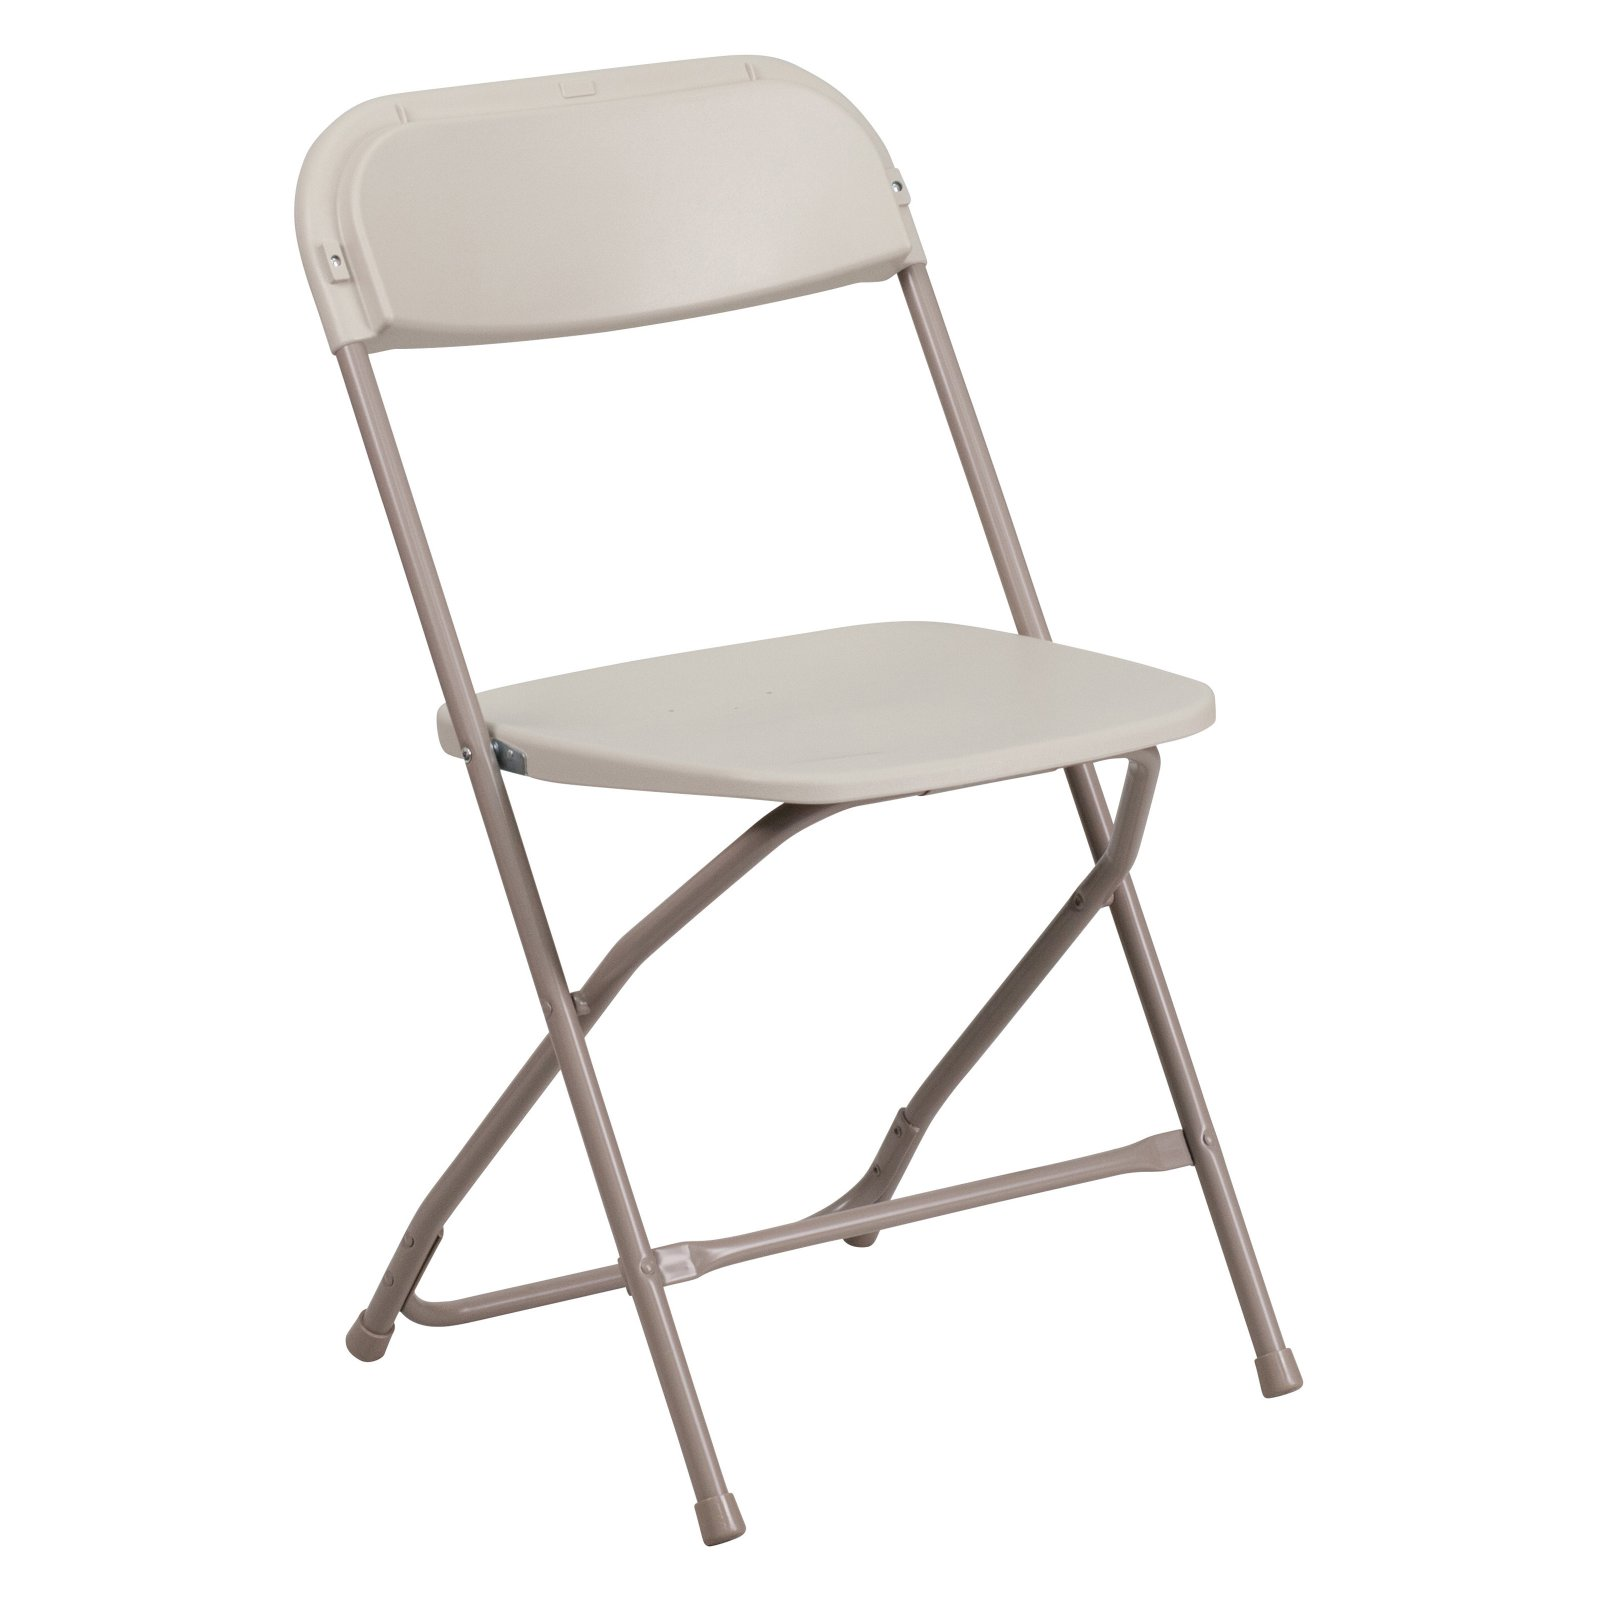 Flash Furniture HERCULES Series 800 lb Capacity Premium Plastic Folding Chair Multiple Colors  sc 1 st  Walmart.com : cheap outdoor folding chairs - Cheerinfomania.Com